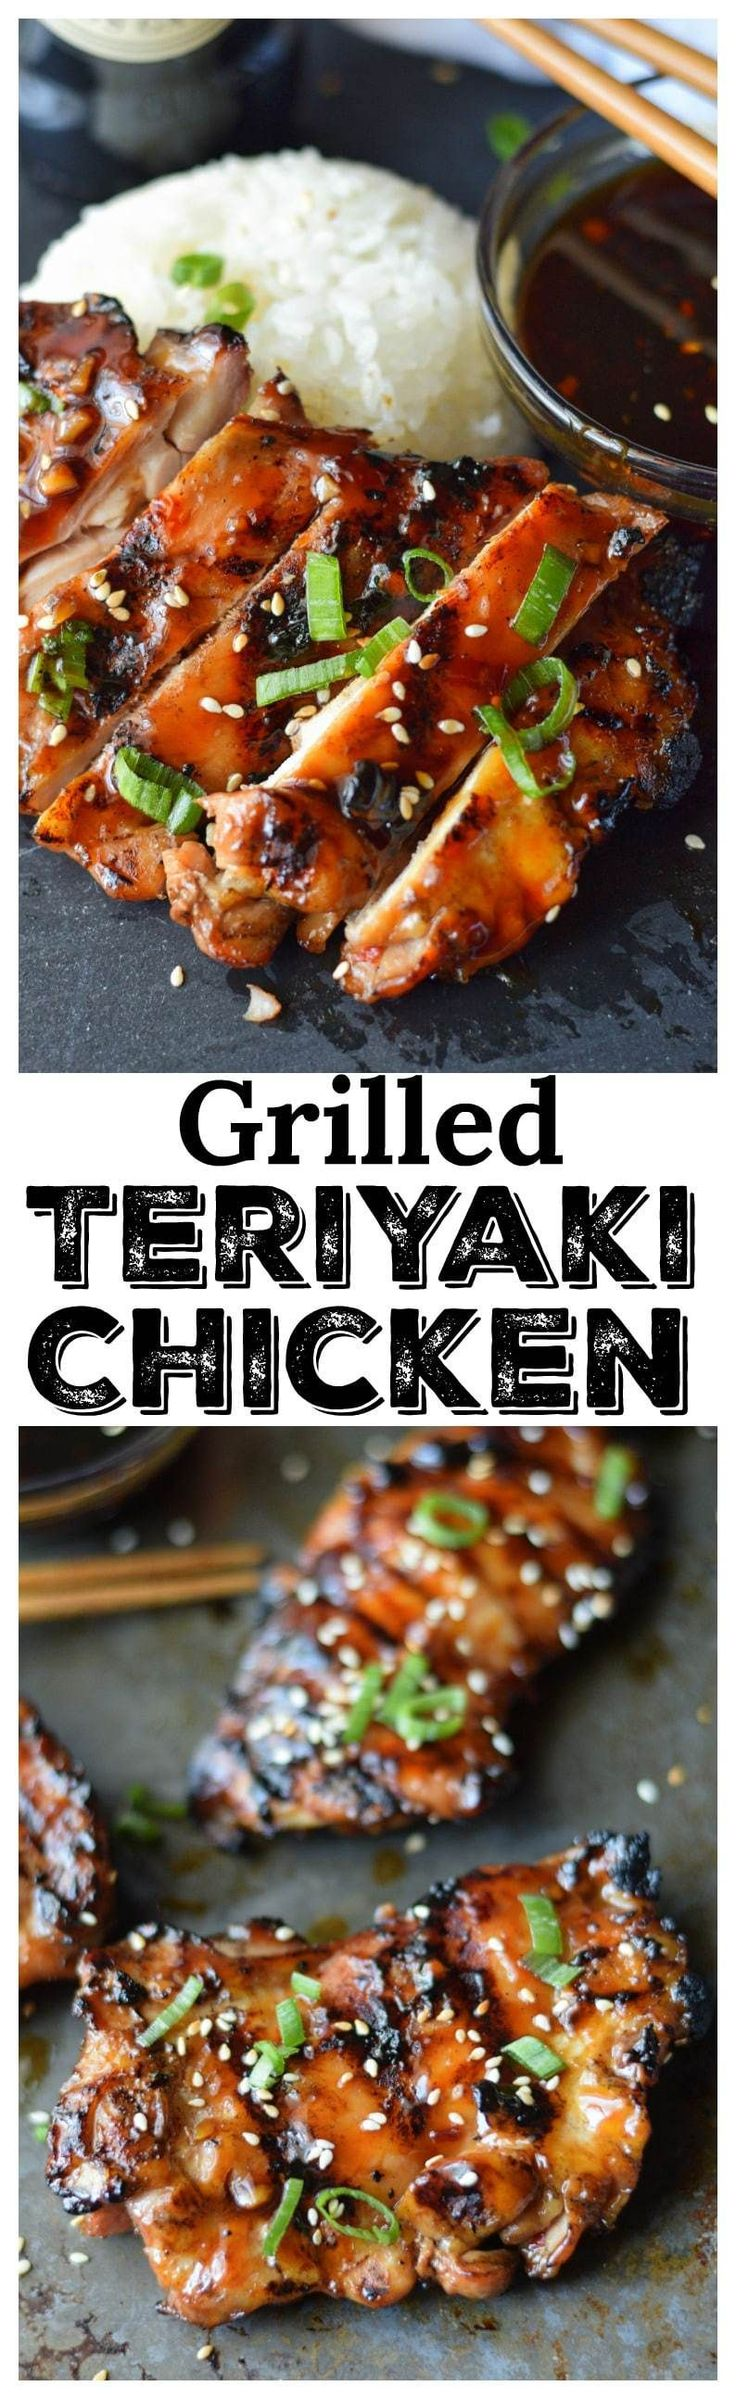 This Grilled Teriyaki Chicken recipe is amazing! Melt in your mouth chicken, smothered in sticky teriyaki sauce. Shared by Where YoUth Rise.